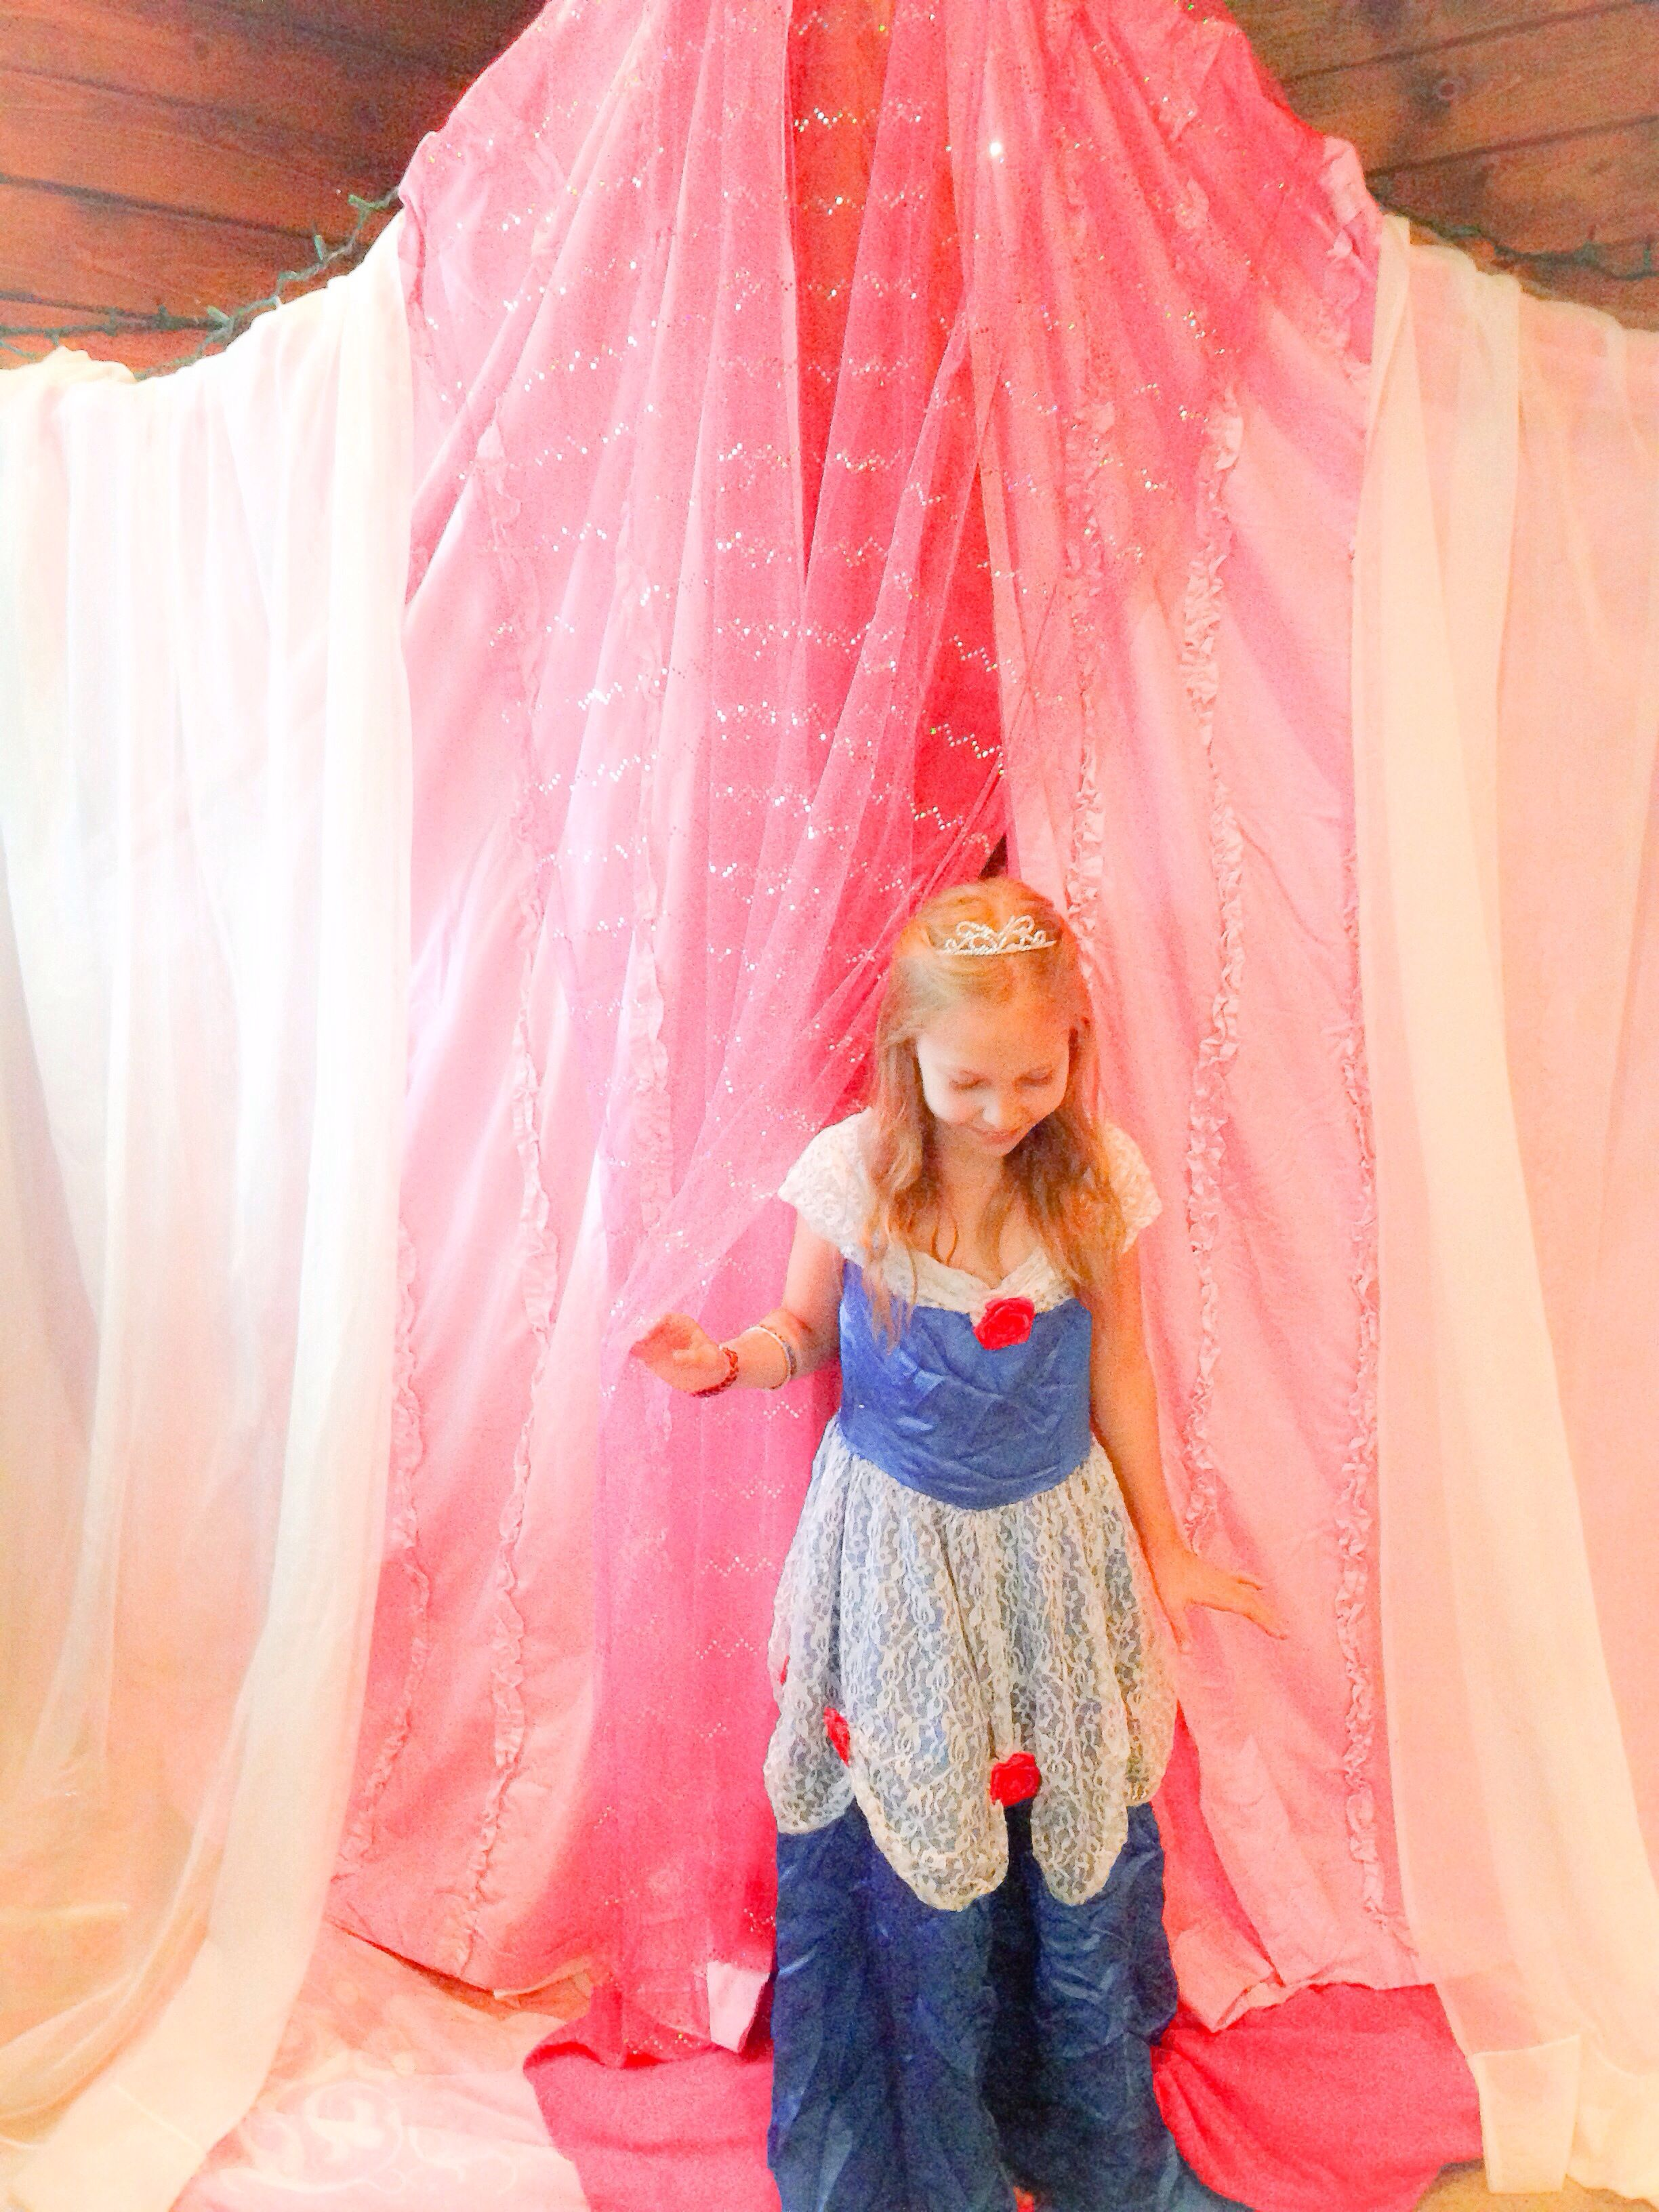 Or sleeping bags clothes pegs optional fairy lights optional - Diy Girls Dreamy Princess Fort Castle I Used Hooks And Xmas Lights To Improvise Strings Then Used Curtains And Sleeping Bags For Fluffy Sleeping Area